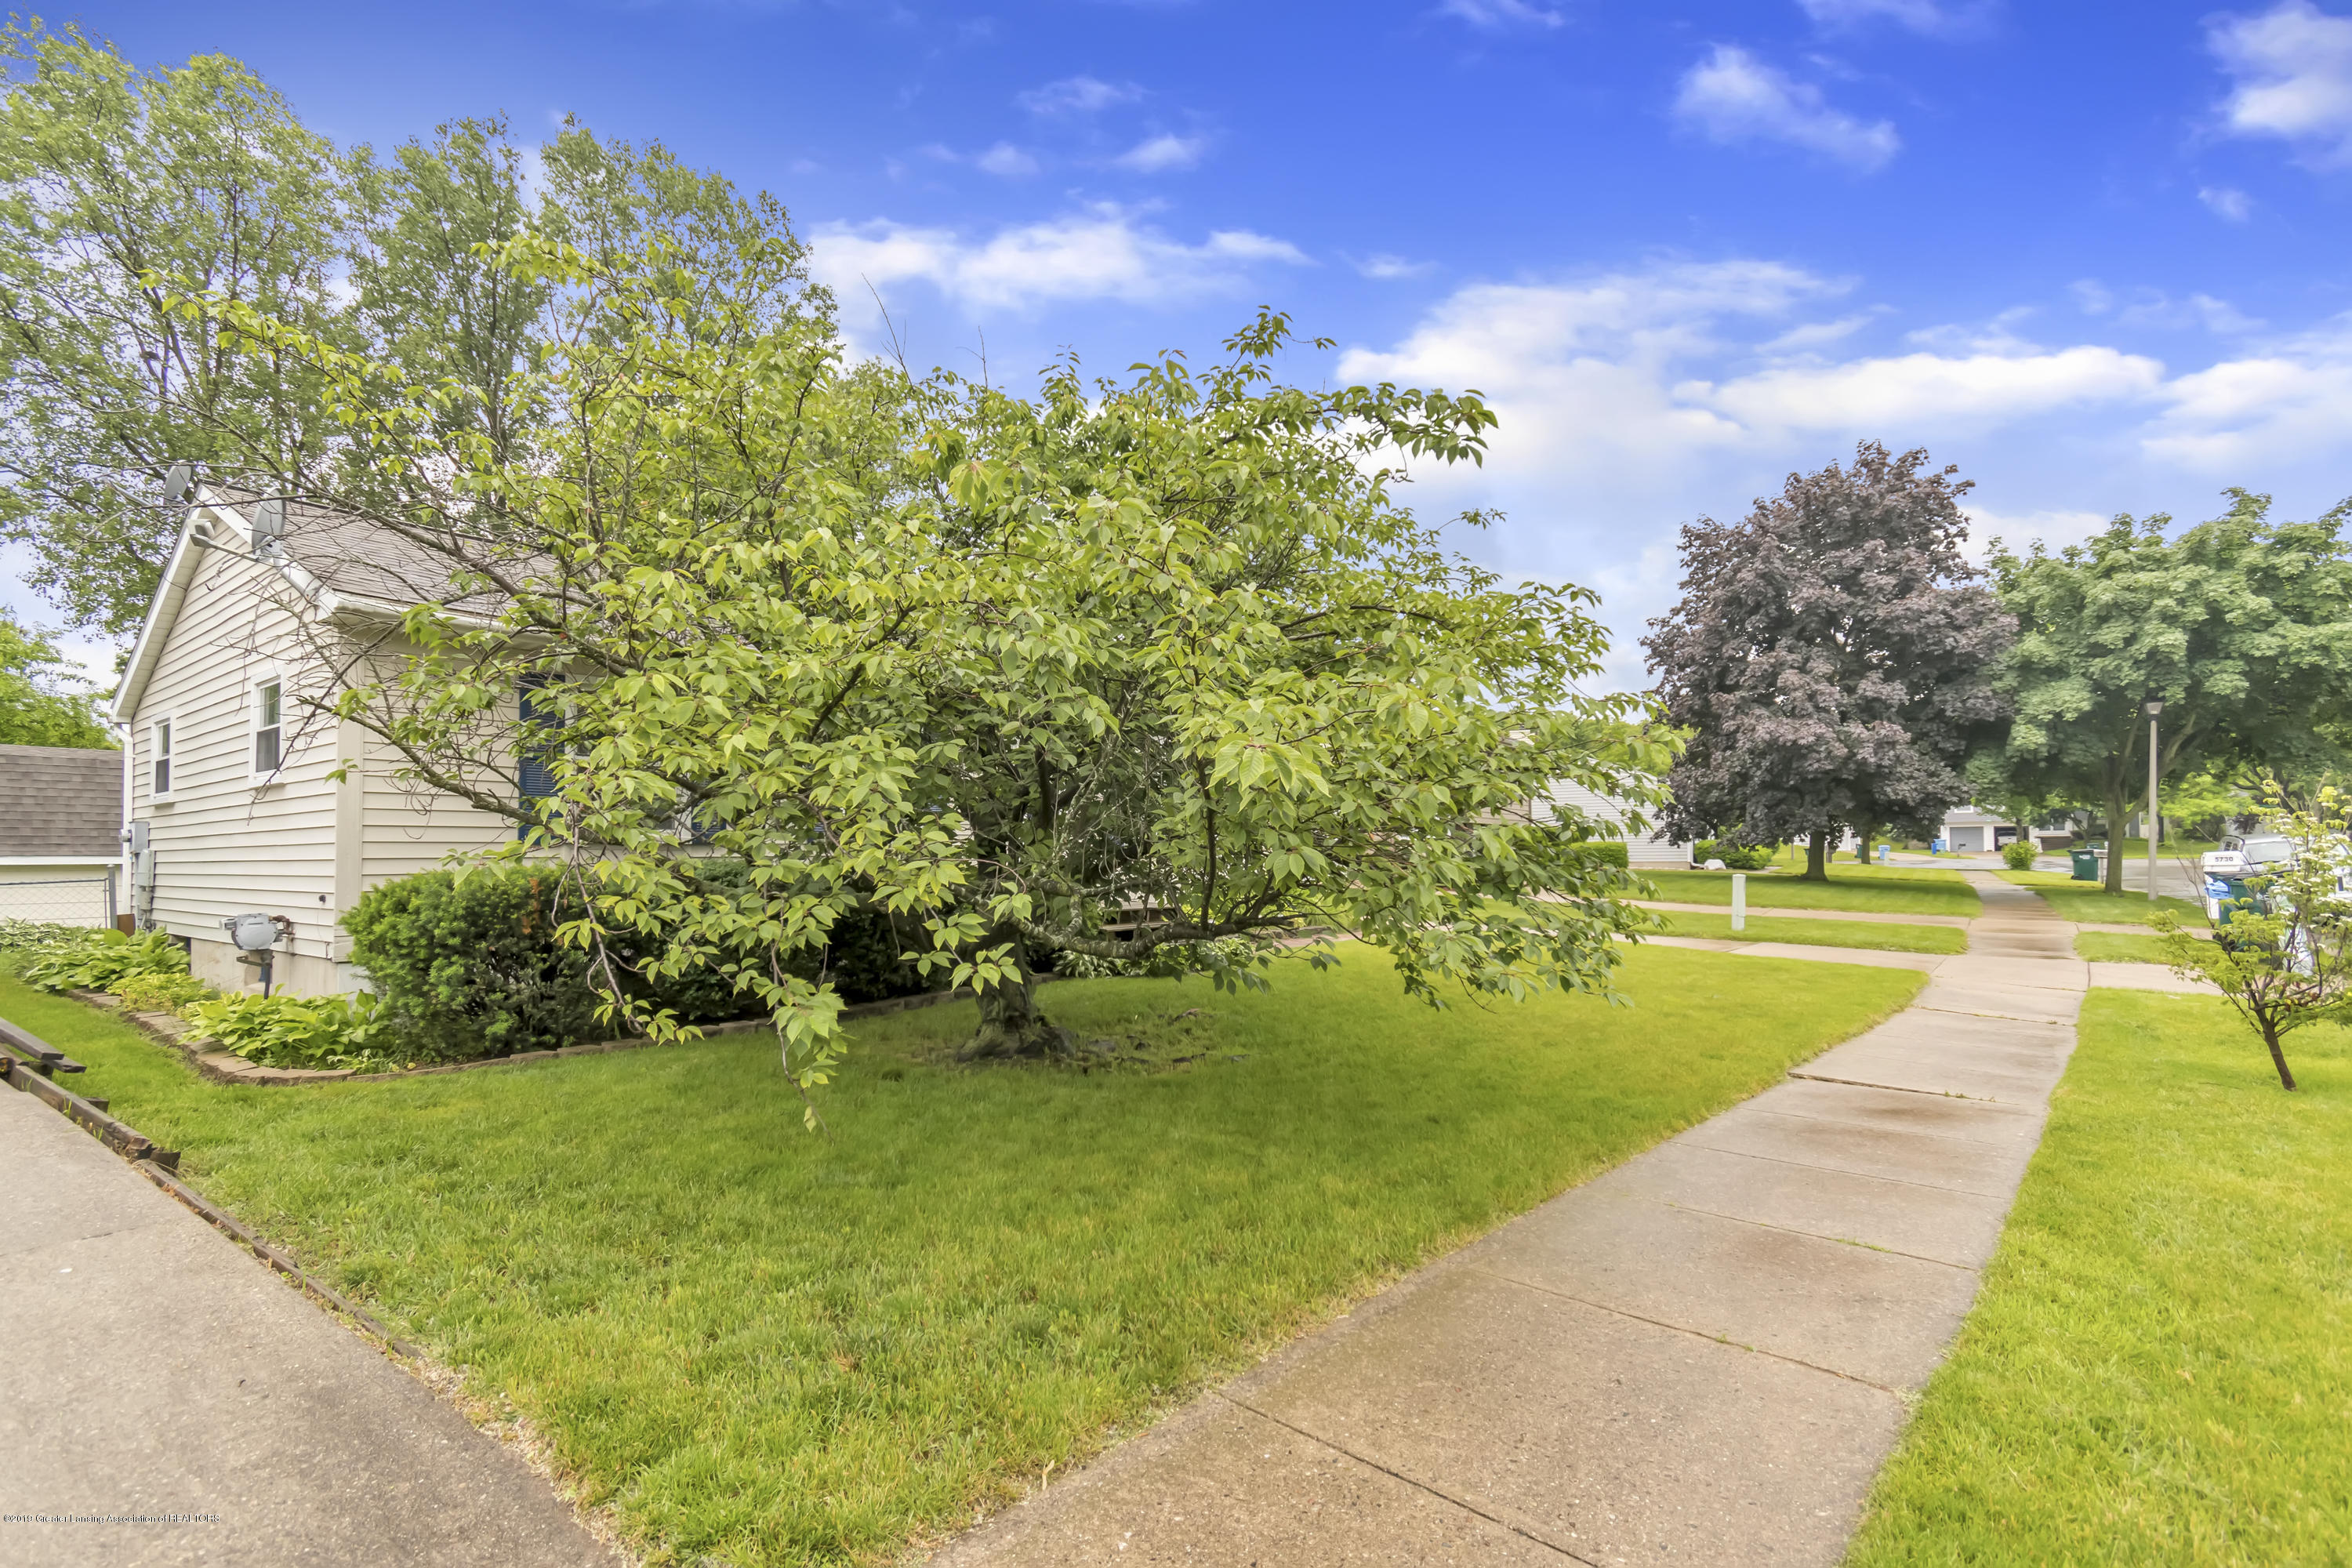 5736 Coulson Ct - 5736-Coulson-Ct-Lansing-MI-windowstill-4 - 4